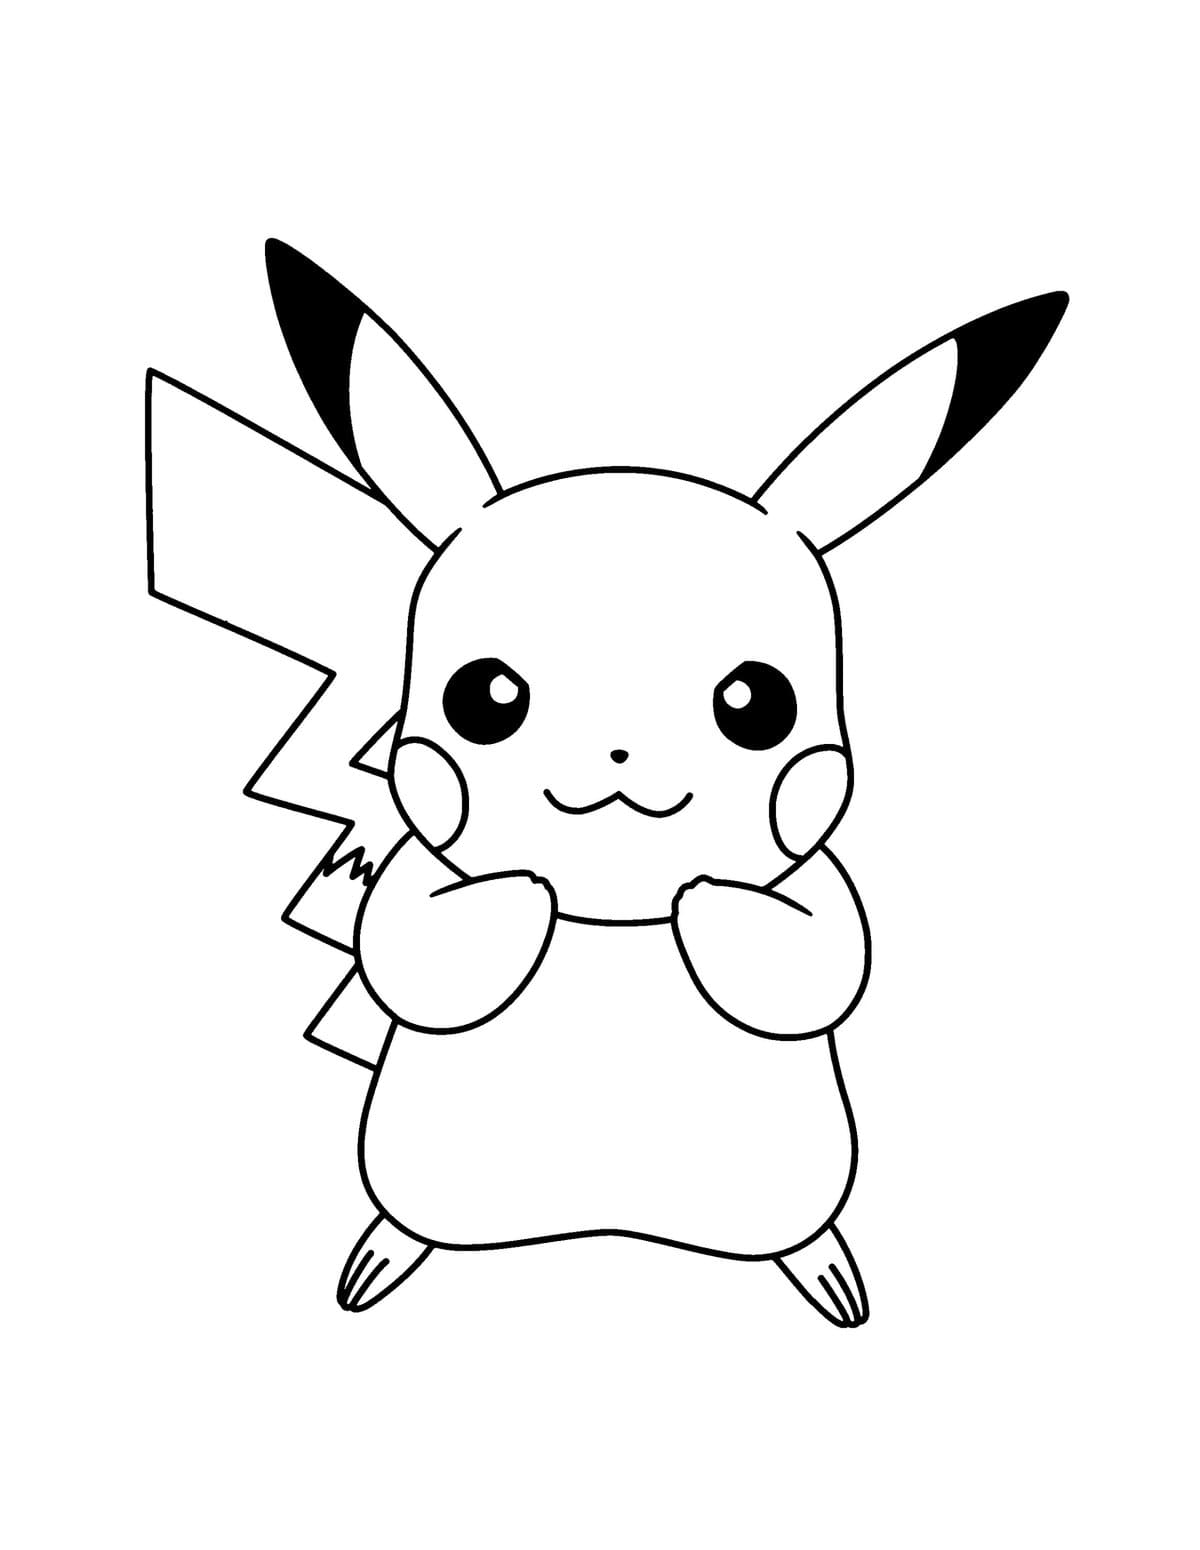 Coloring Pages Pikachu and other Pokemon. Print for free 100 images